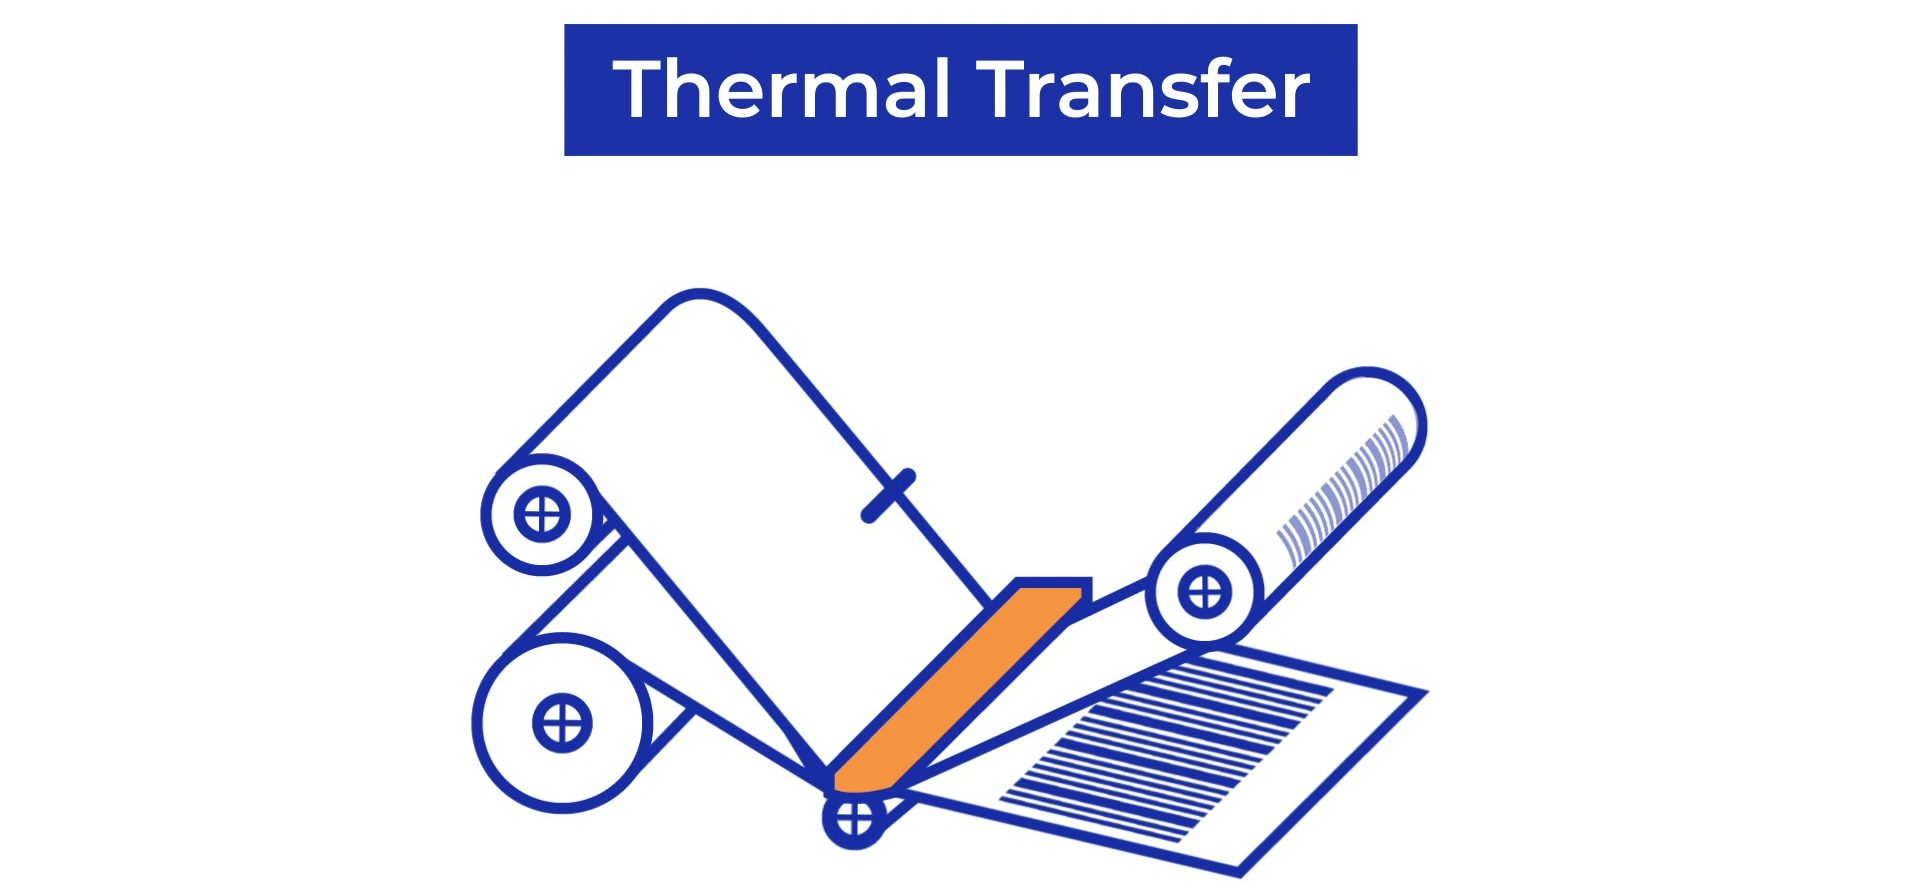 Thermal Transfer Printing technology